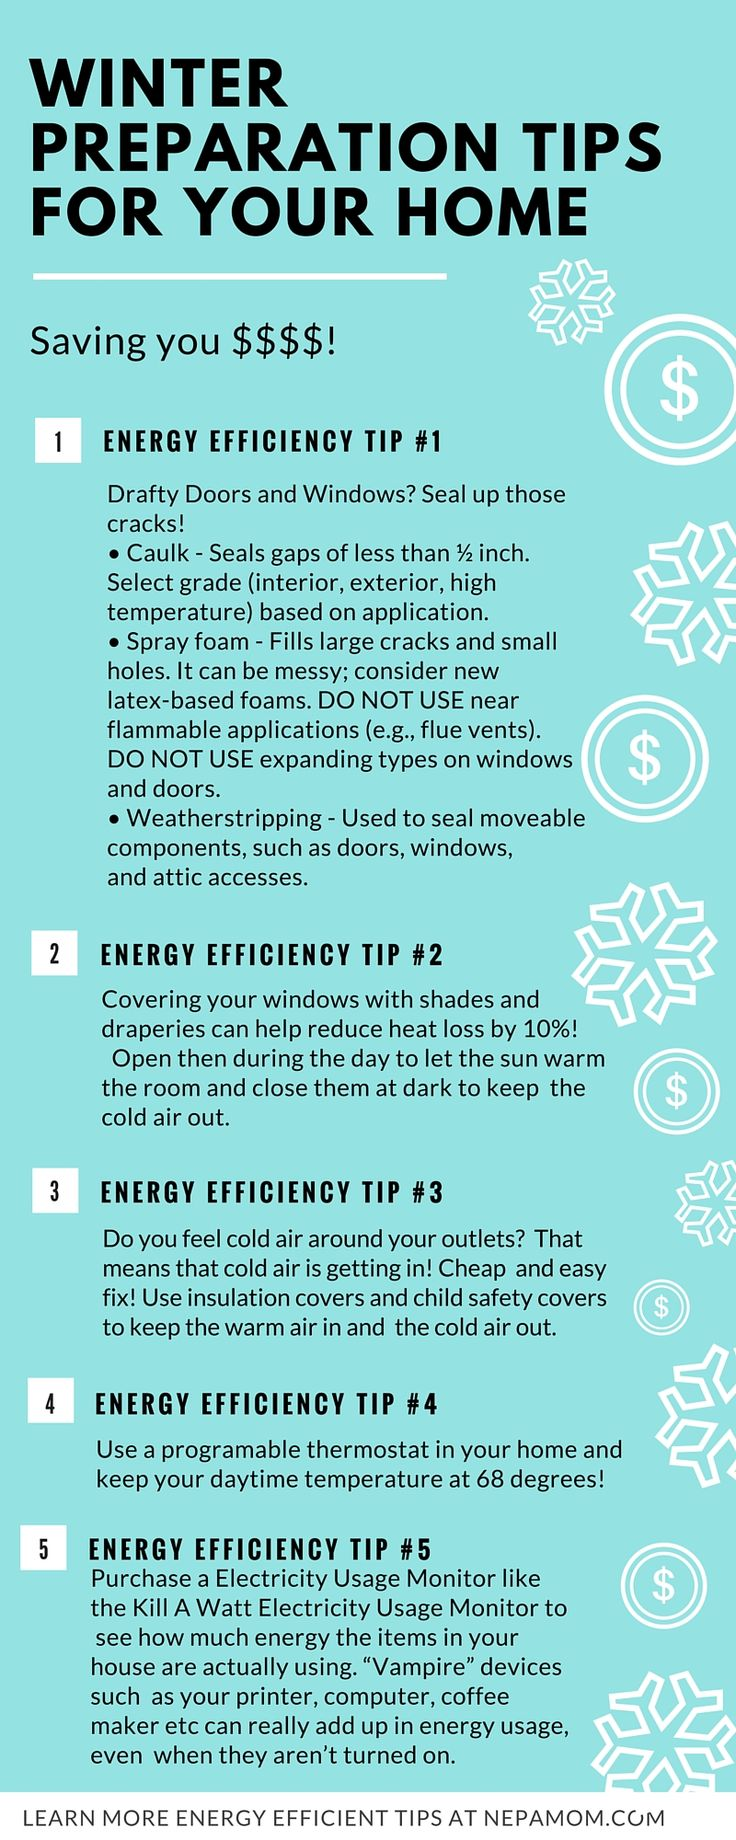 Winter Preparation Tips for your Home (1)